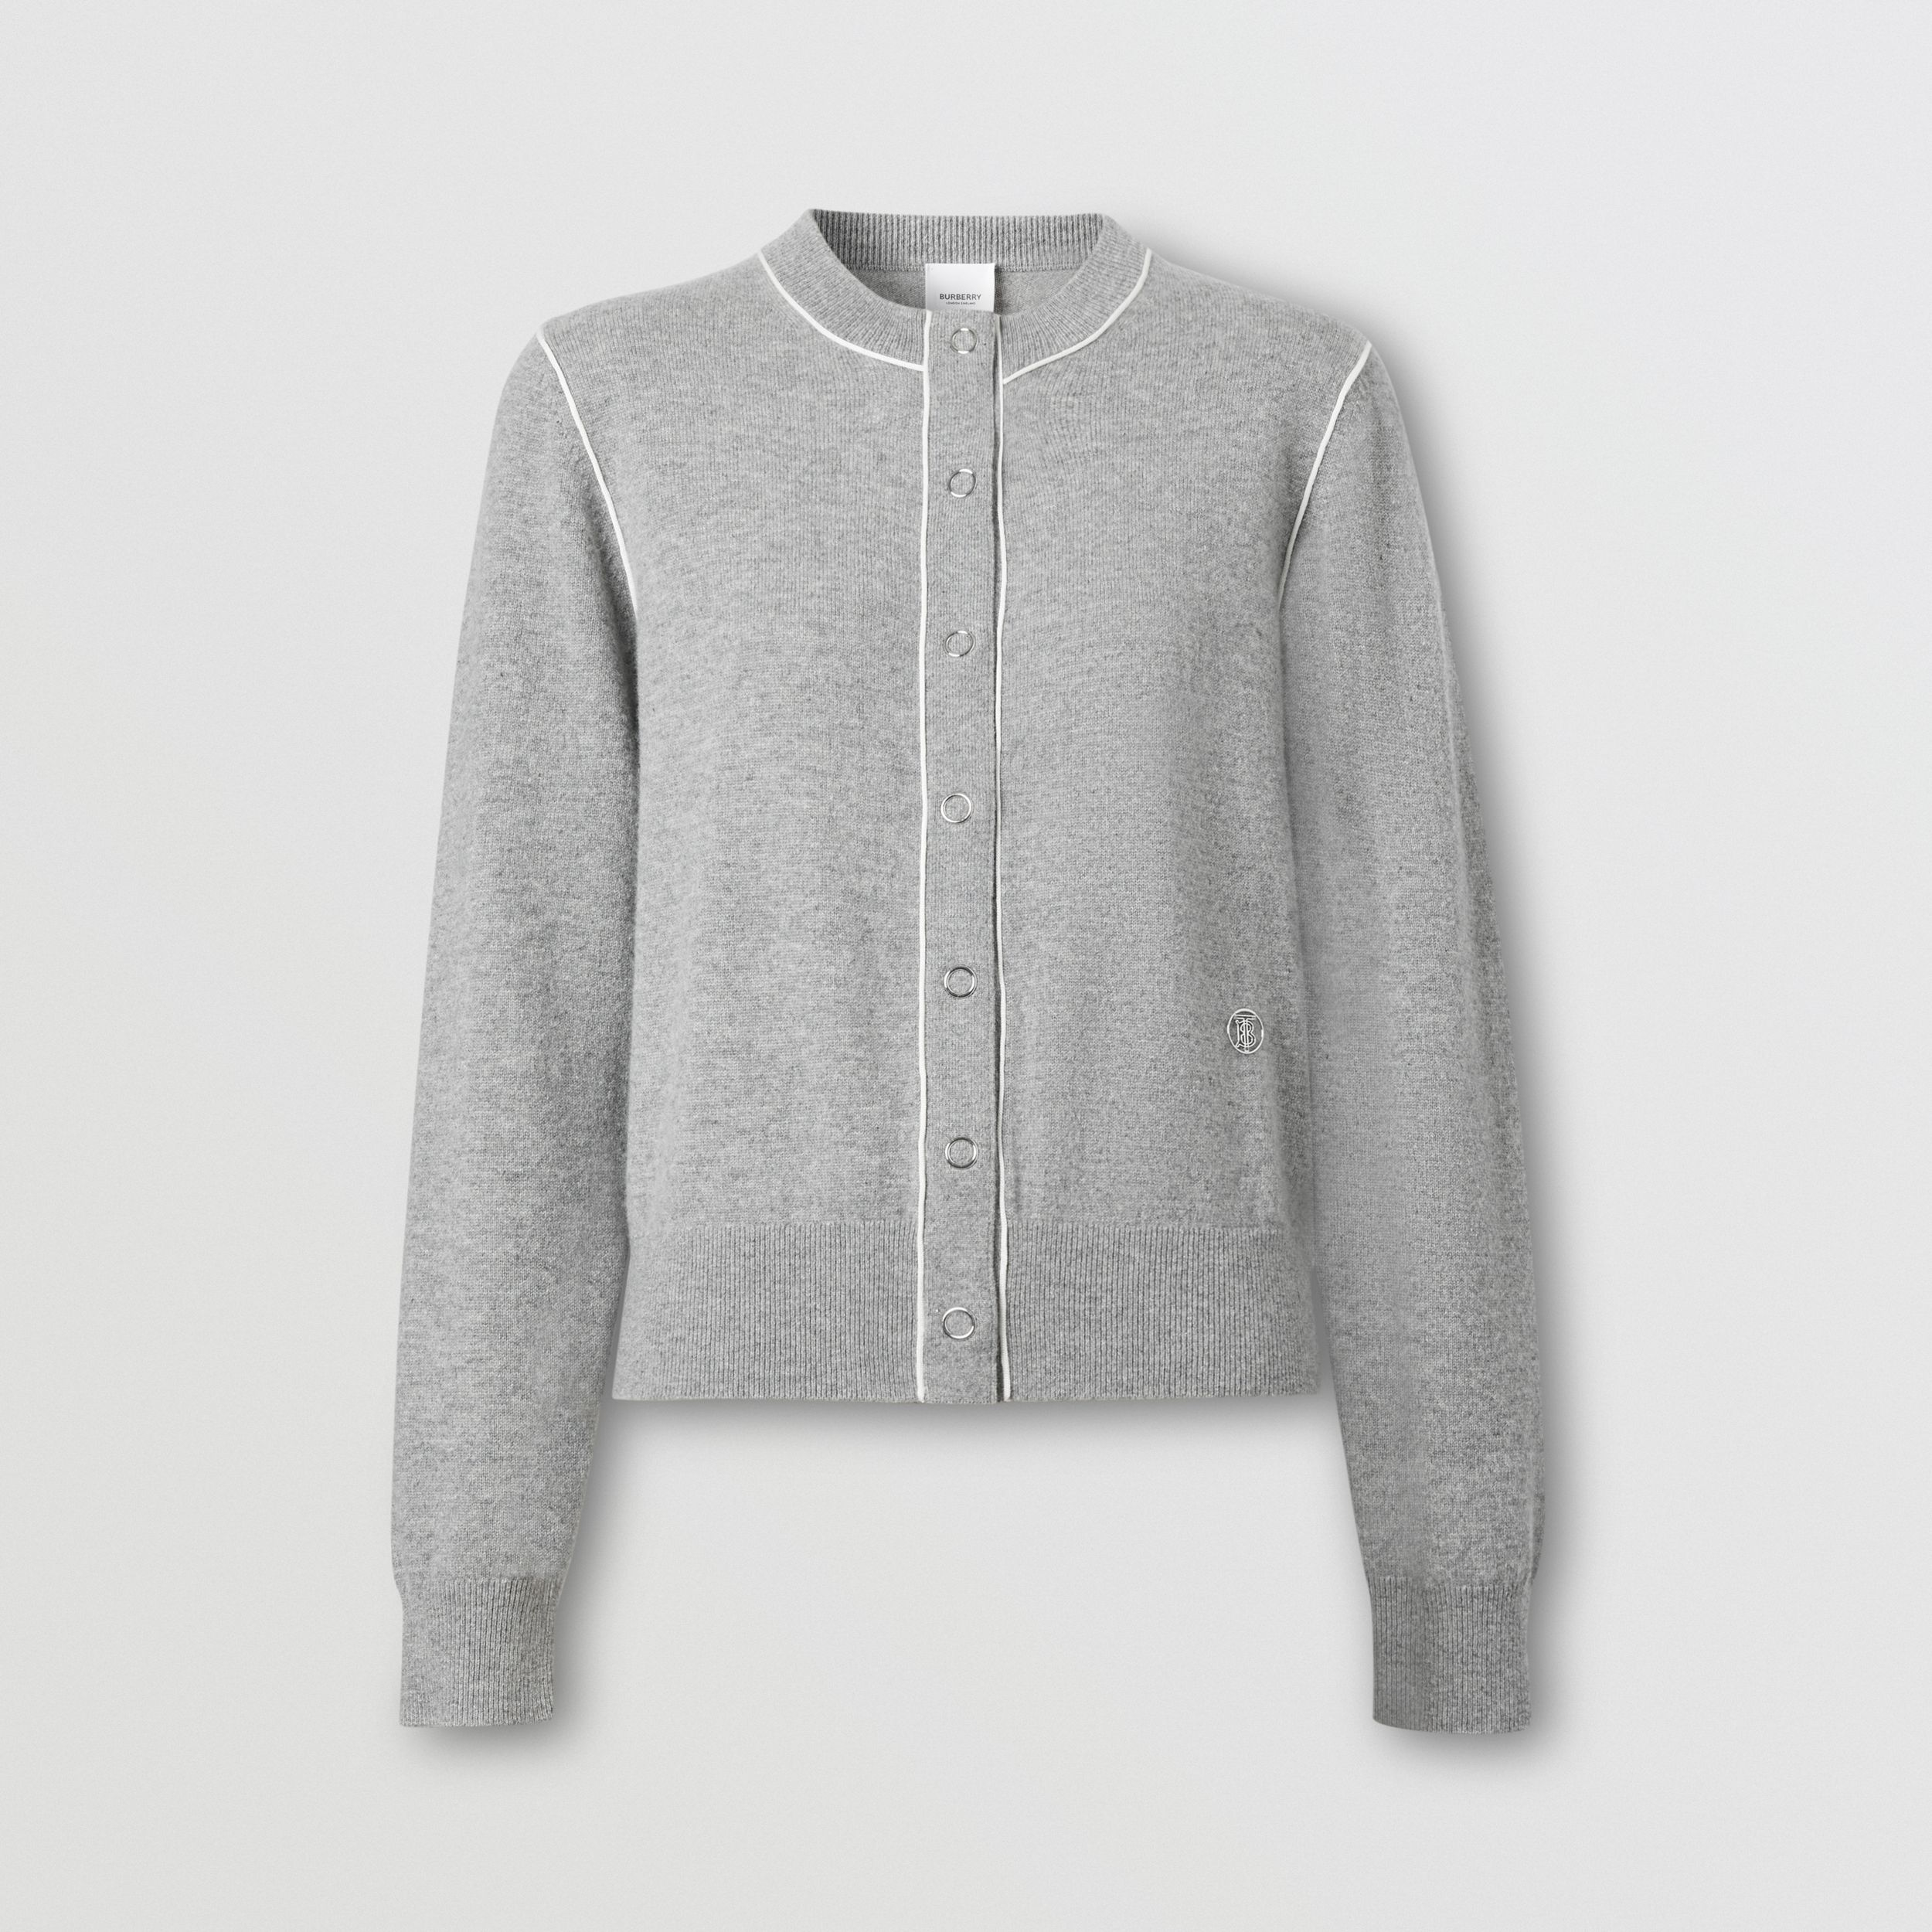 Silk Trim Monogram Motif Cashmere Cardigan in Grey Melange - Women | Burberry Canada - 4